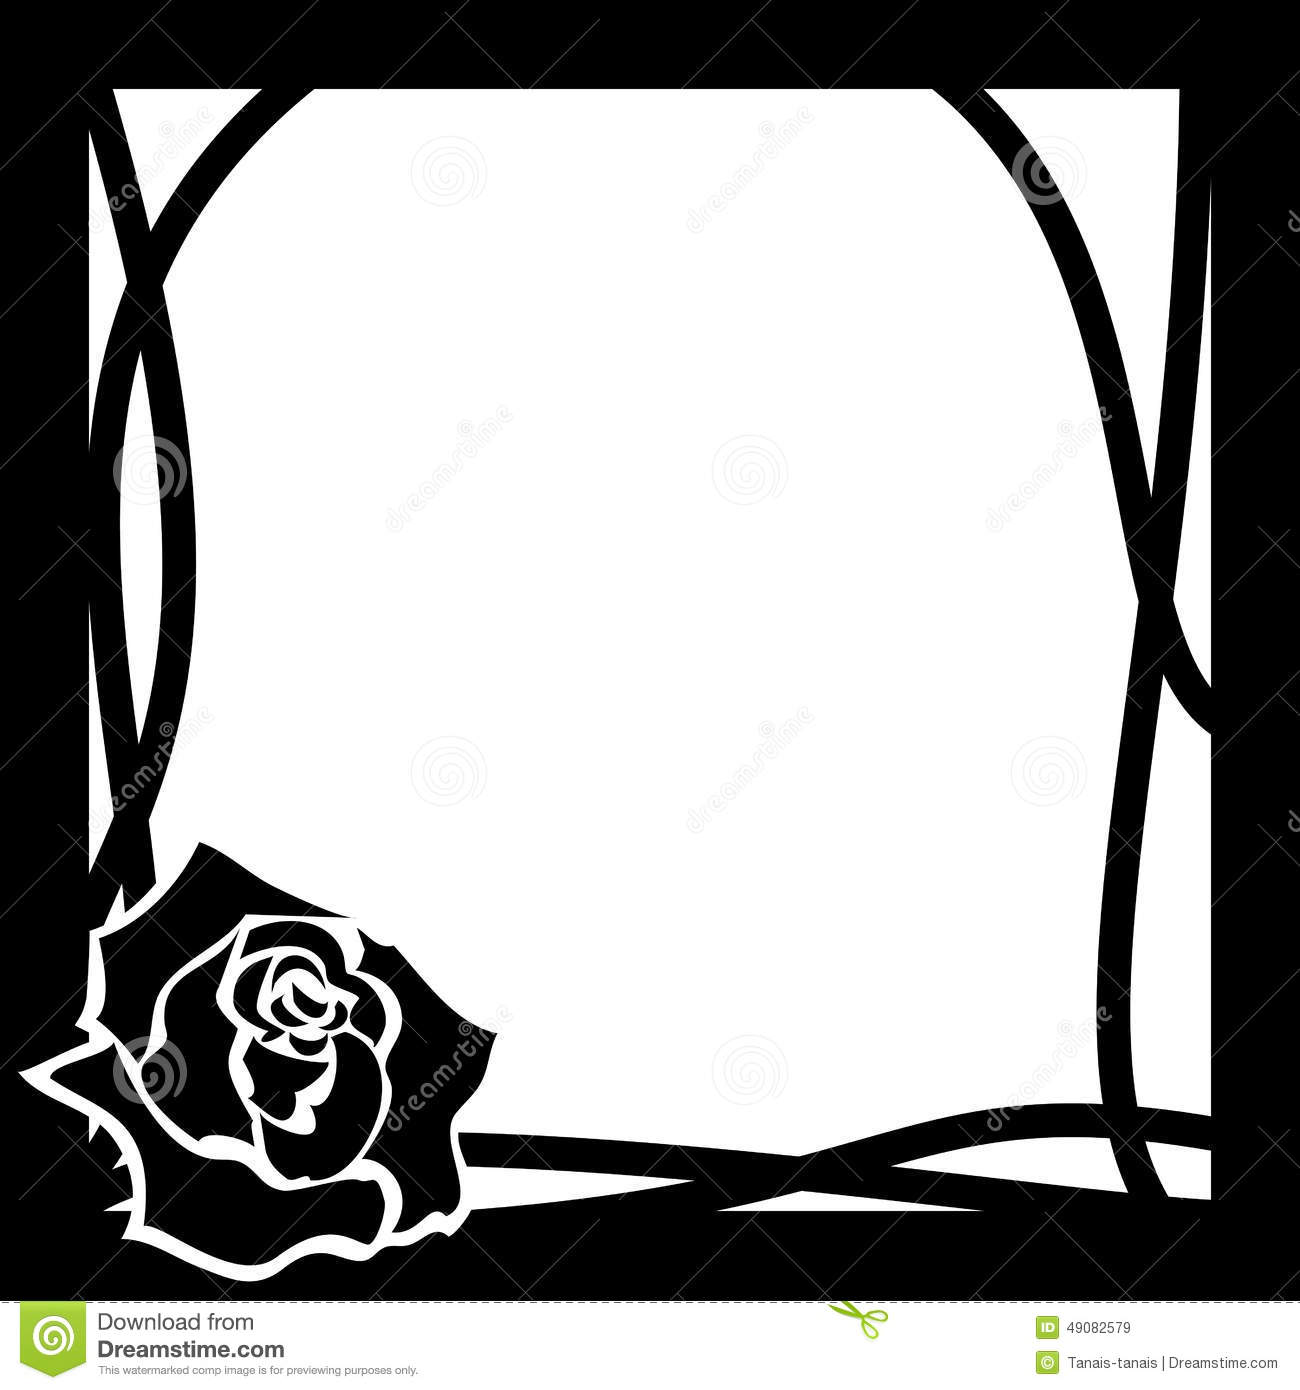 Black And White Rose Clipart - Black And White Rose Png - 640x480 PNG  Download - PNGkit